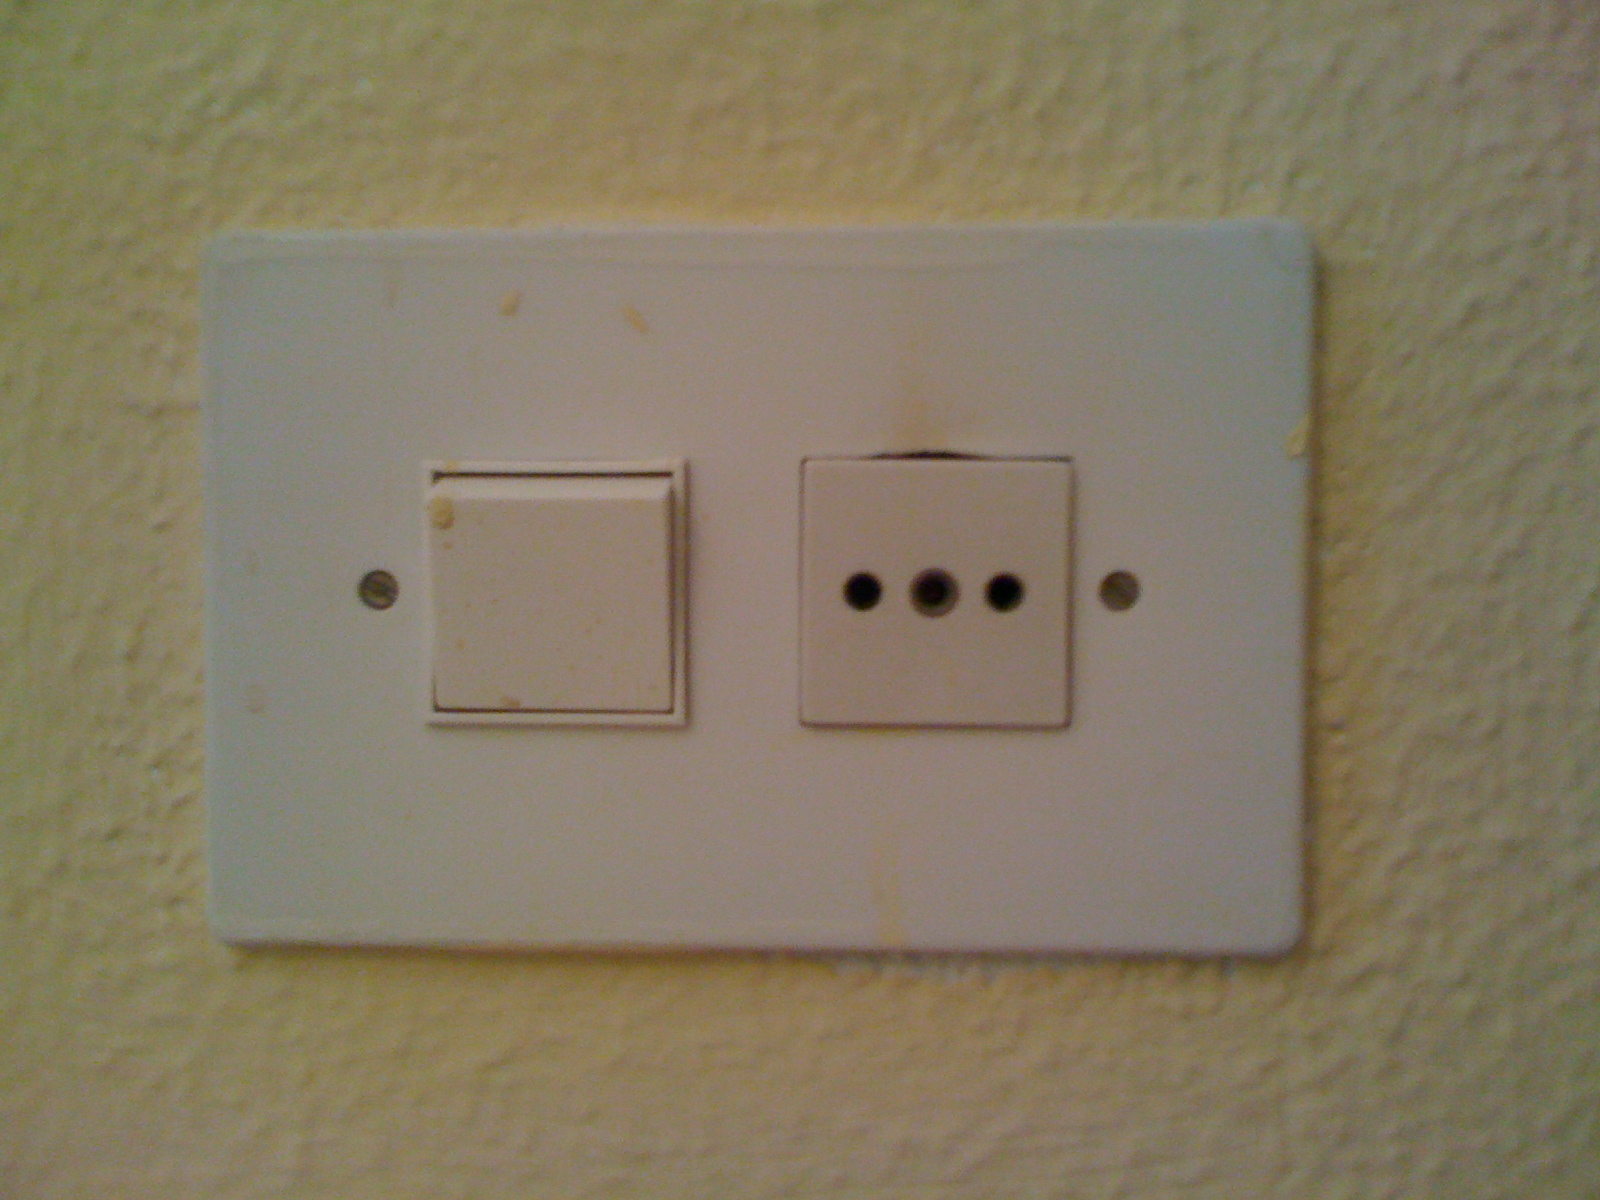 sparks in spain risk of electrocution from unsafe spanish sockets rh tonysparksinspain blogspot com Old Light Switch Wiring Light Switch Wiring 2 Pole